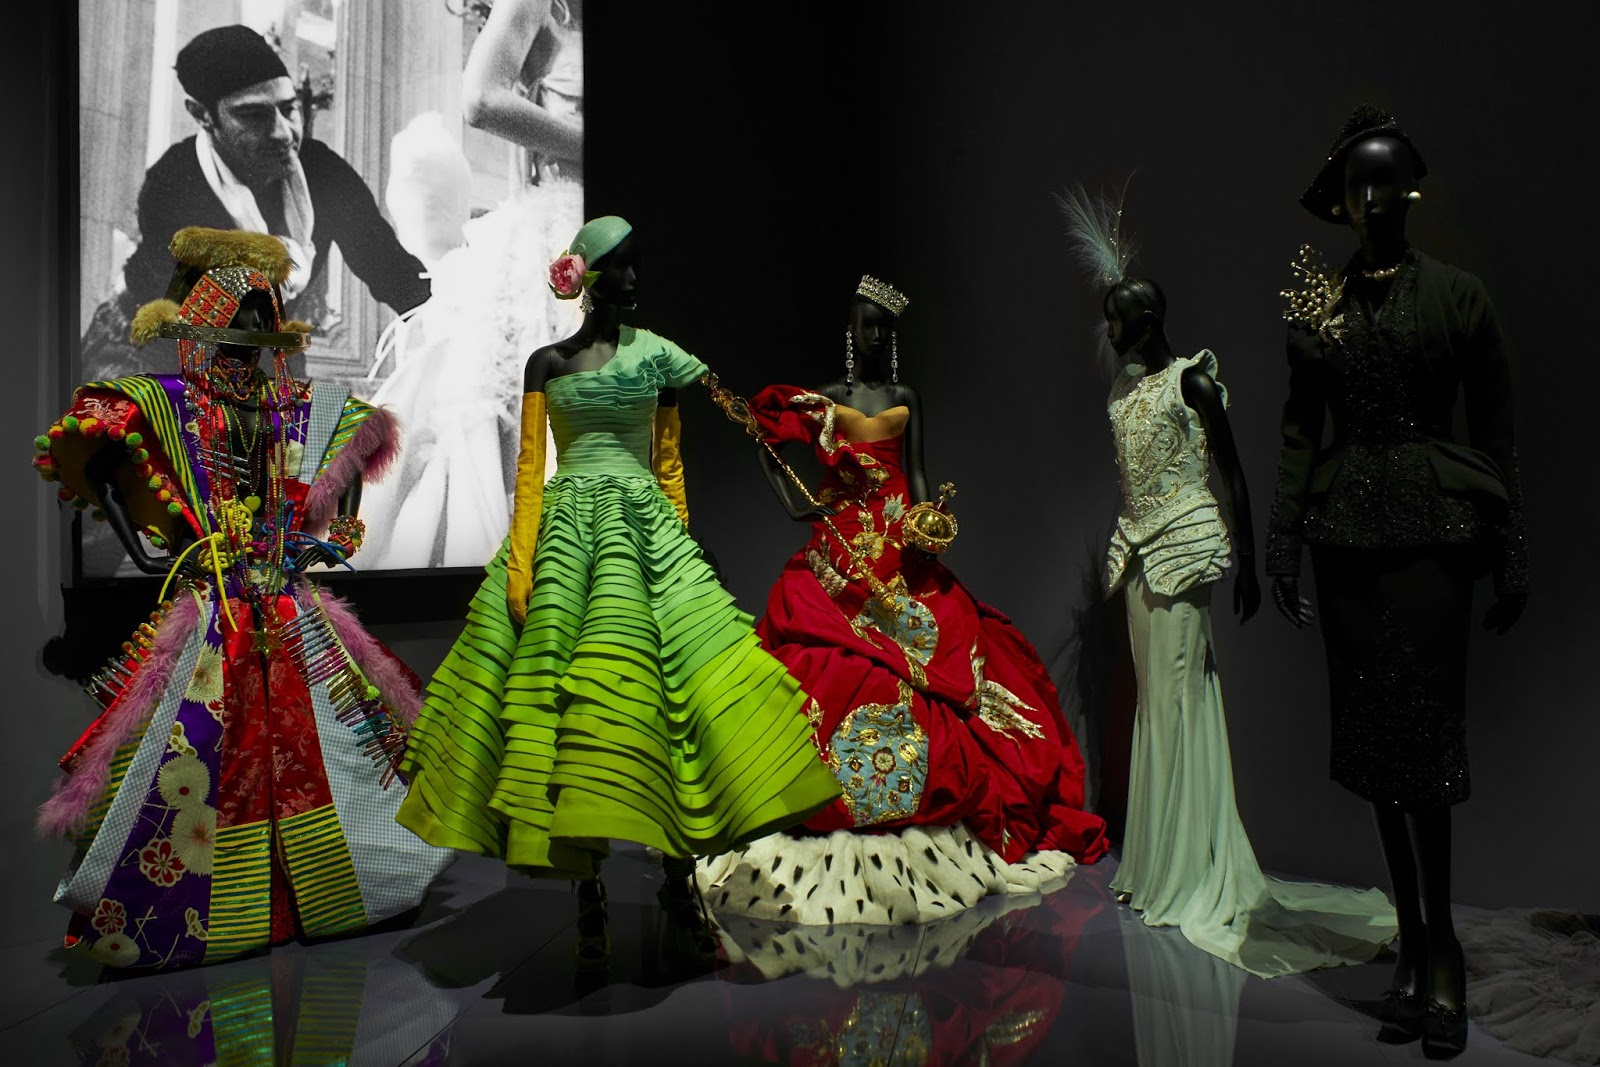 V&A_Christian Dior Designer of Dreams exhibition_Designers For Dior section (c) ADRIEN DIRAND (23)